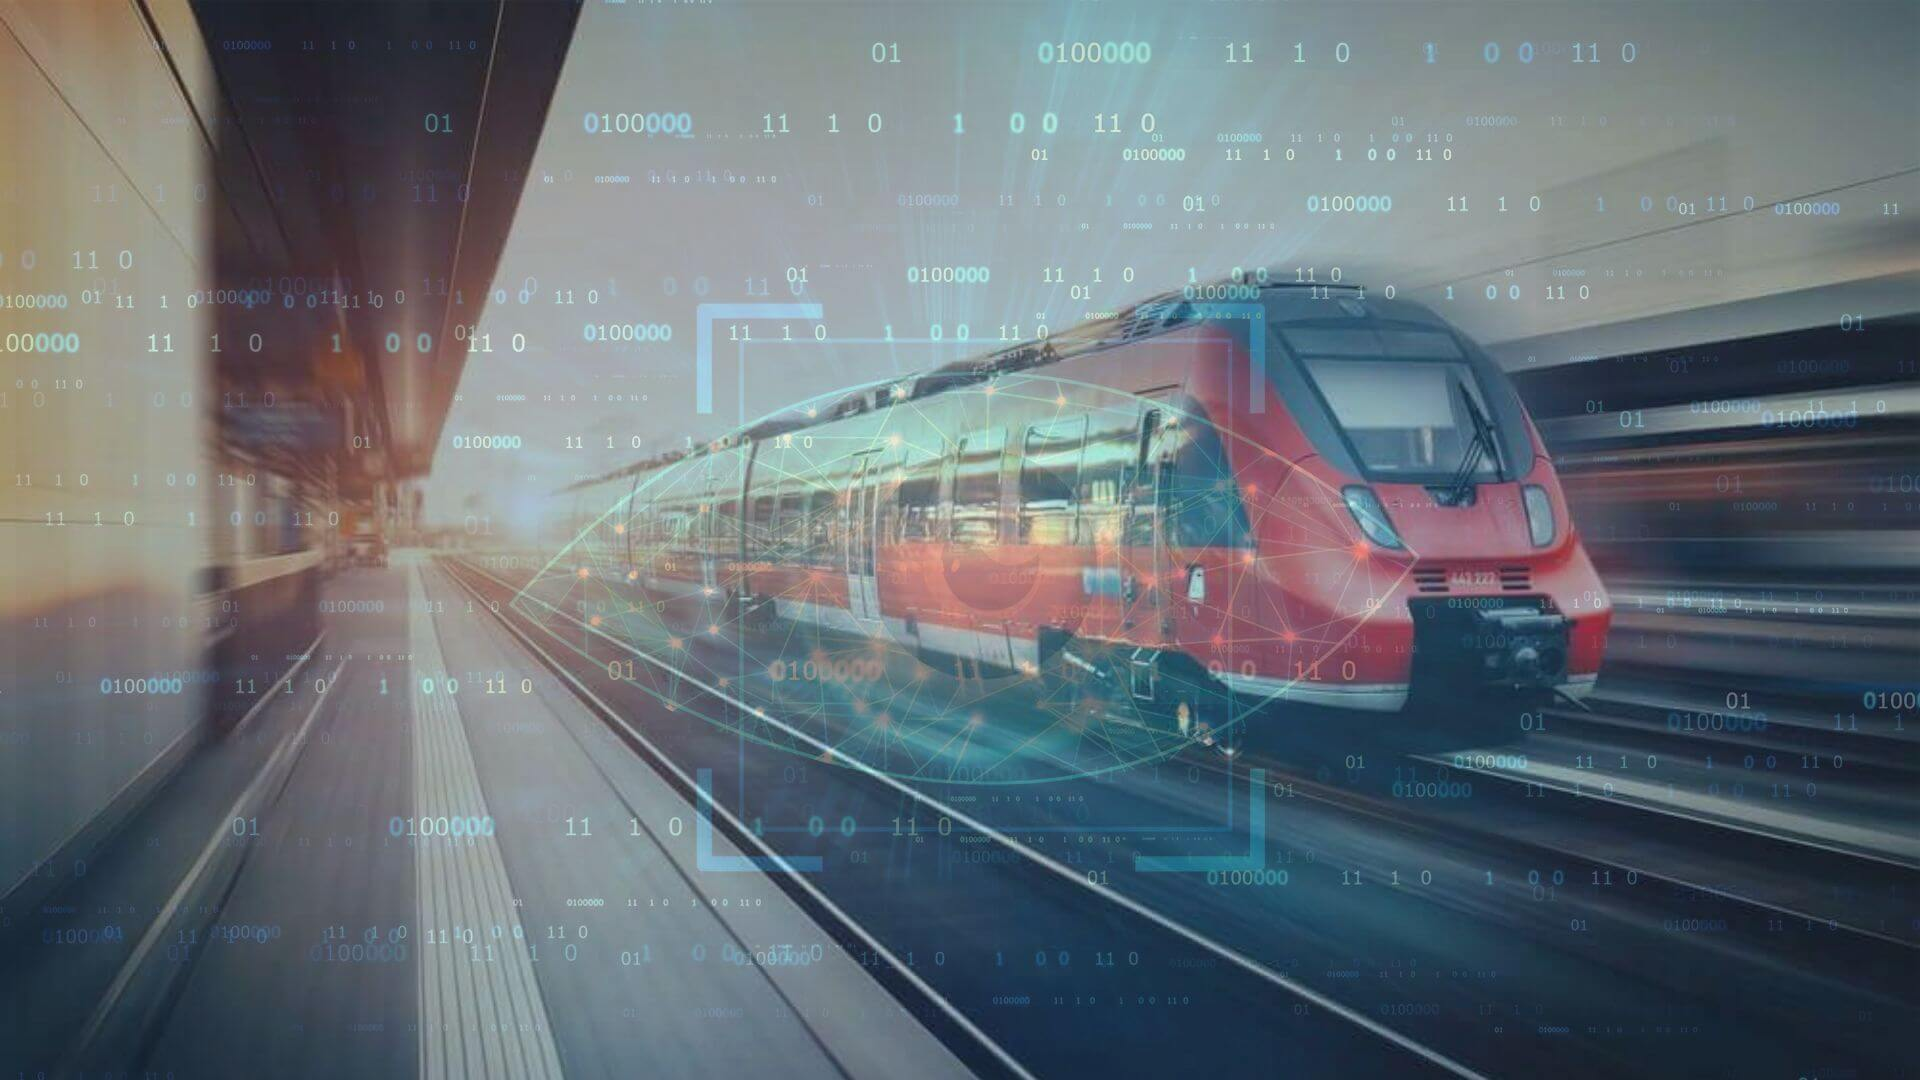 Computer Vision software trialed to measure passenger flow on regular train routes in Lithuania